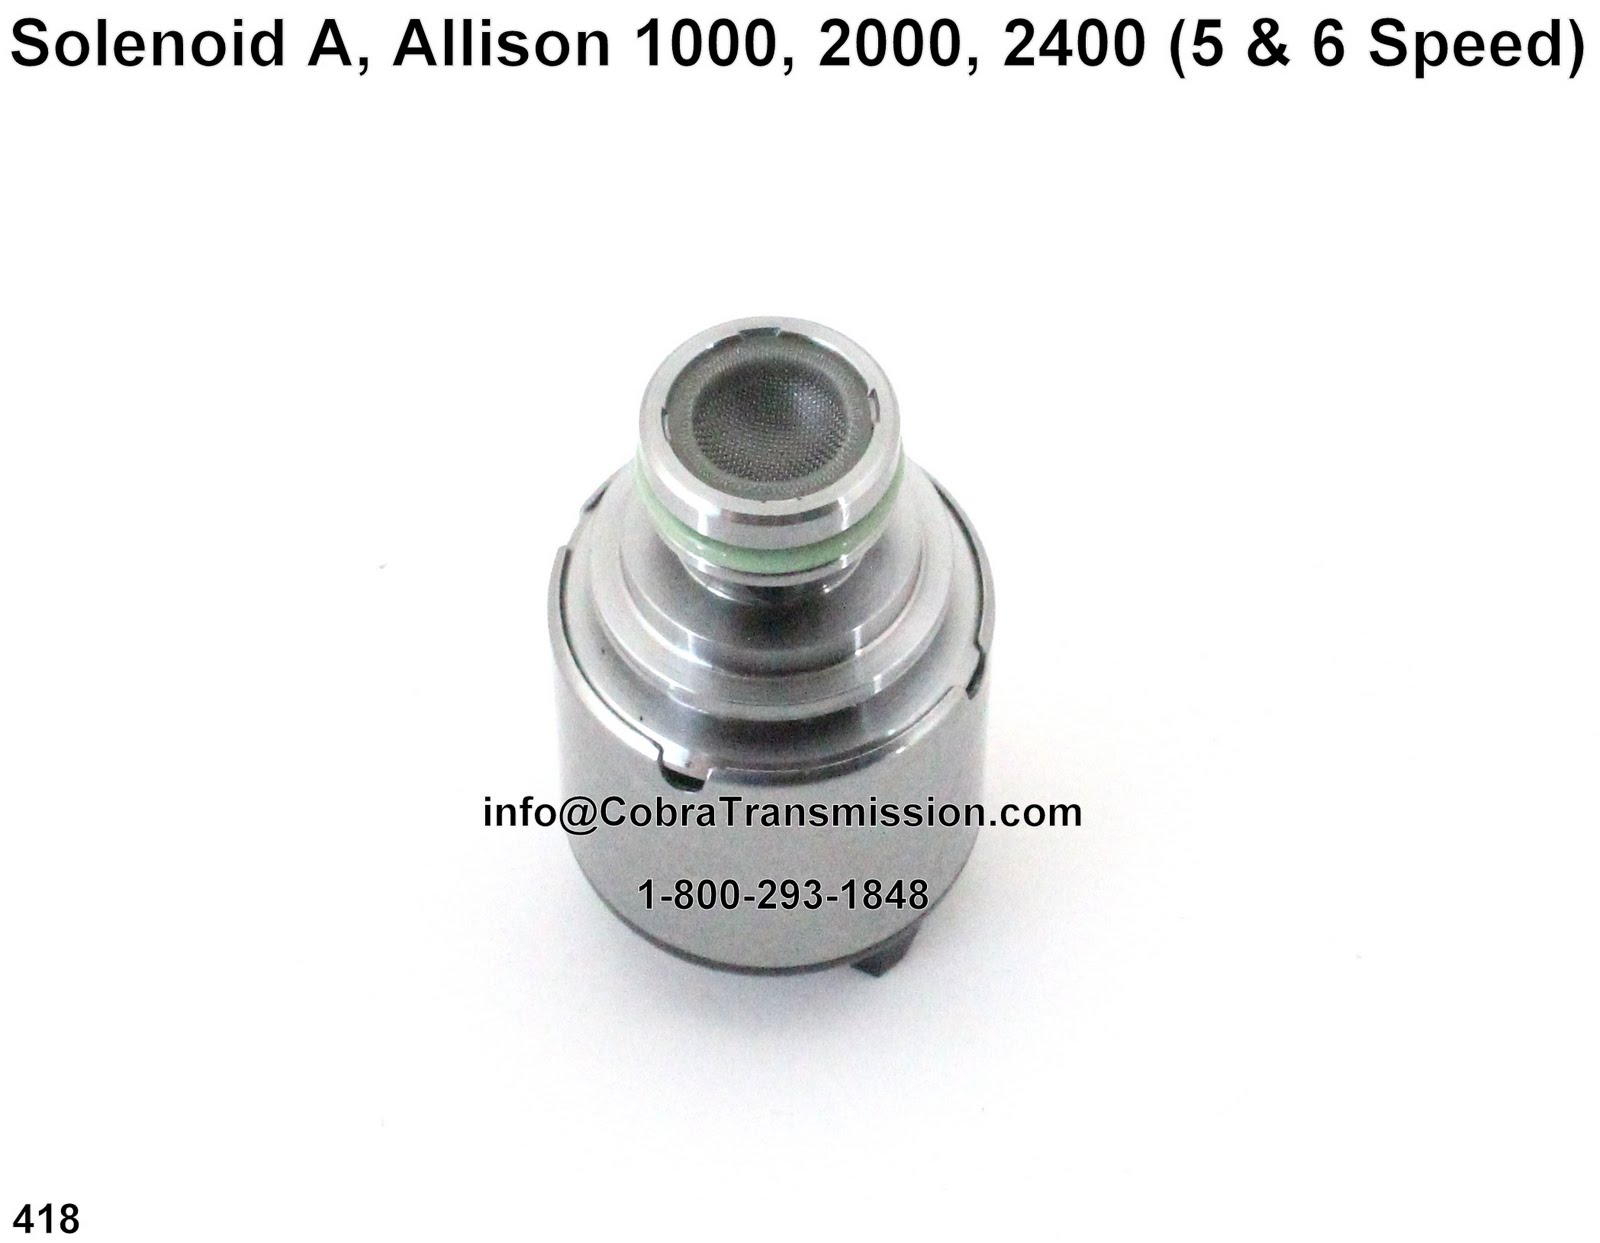 small resolution of cobra transmission parts 1 800 293 1848 allison 1000 2000 2400 transmission parts m74